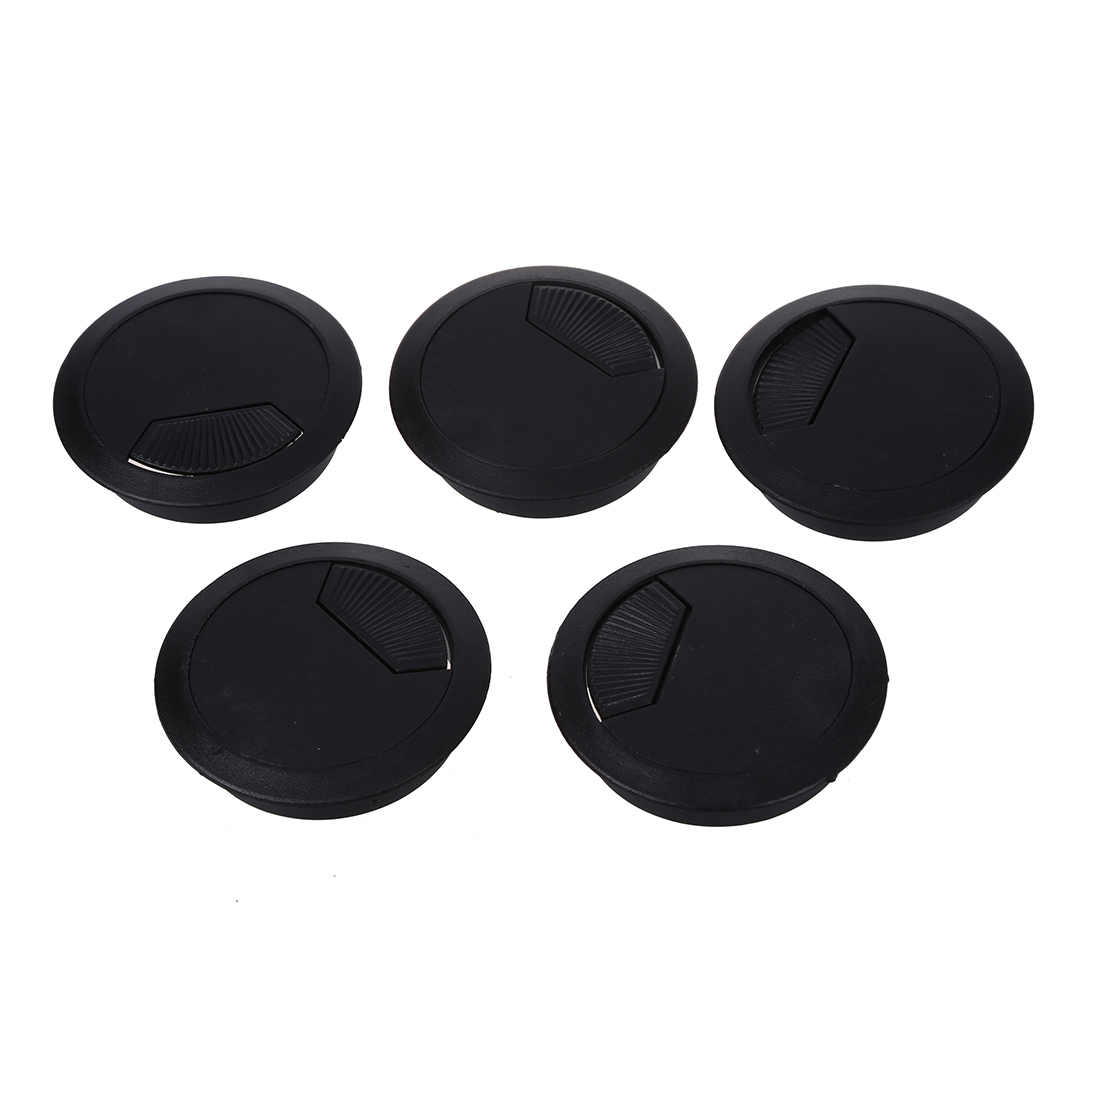 HOT GCZW- 5 Pcs Home Office Desk Table Computer 60mm Cable Cord Grommet Hole Black